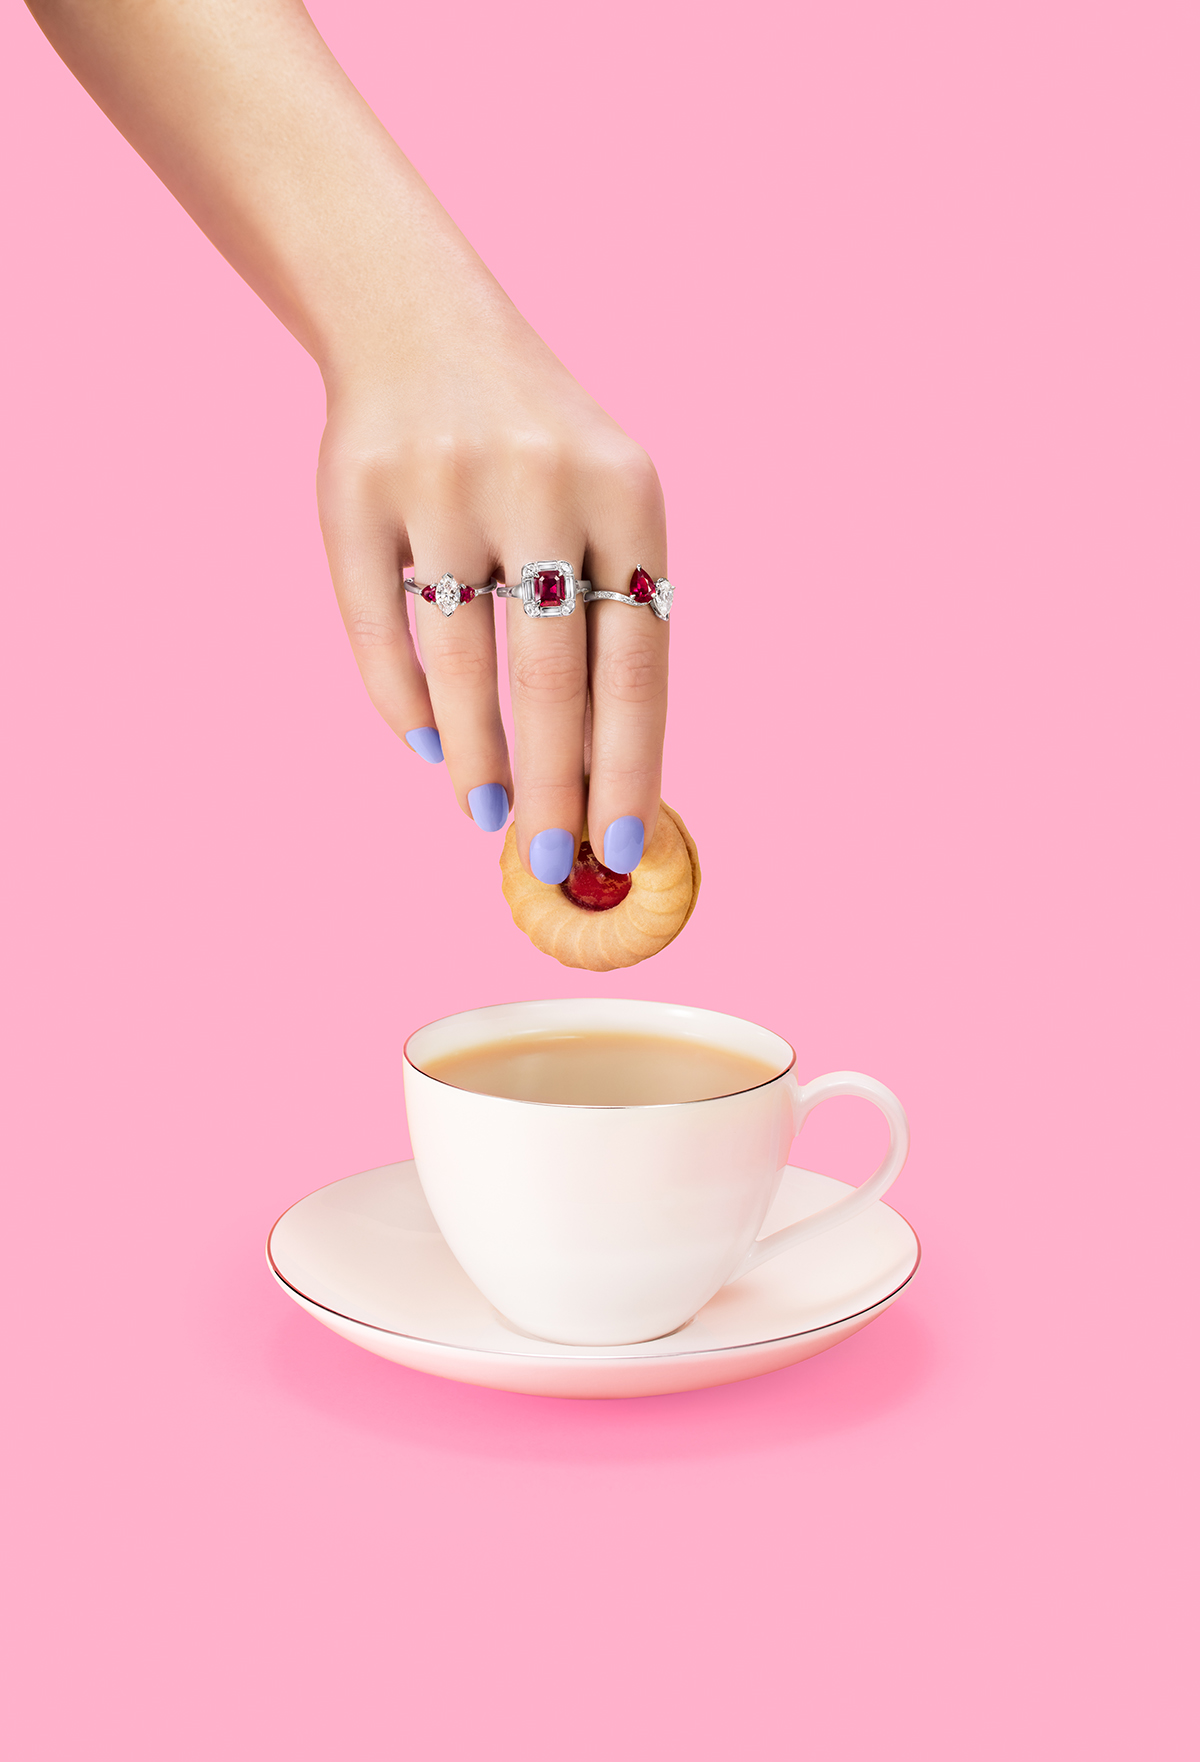 rings on a woman's hand shown dipping biscuit into tea